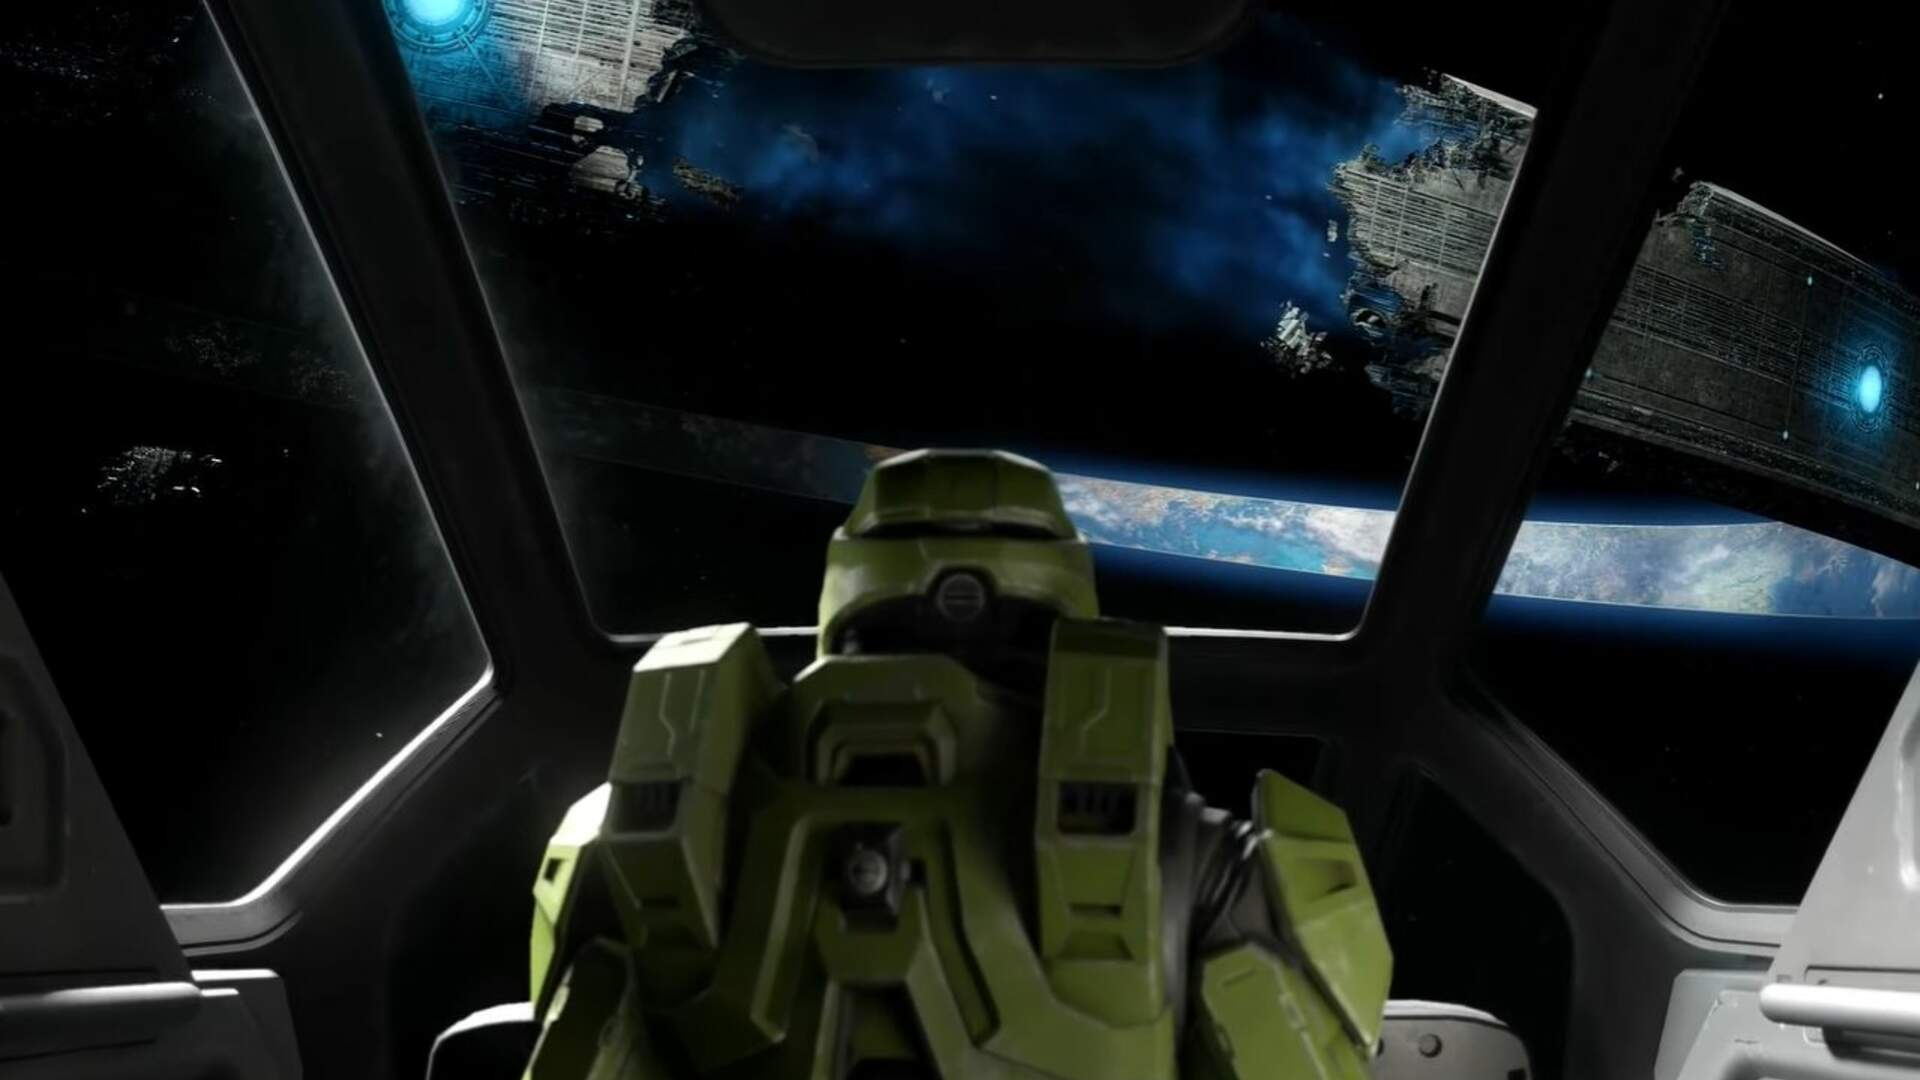 Halo Infinite's E3 2019 Trailer Was All Running in 343's Newest Game Engine